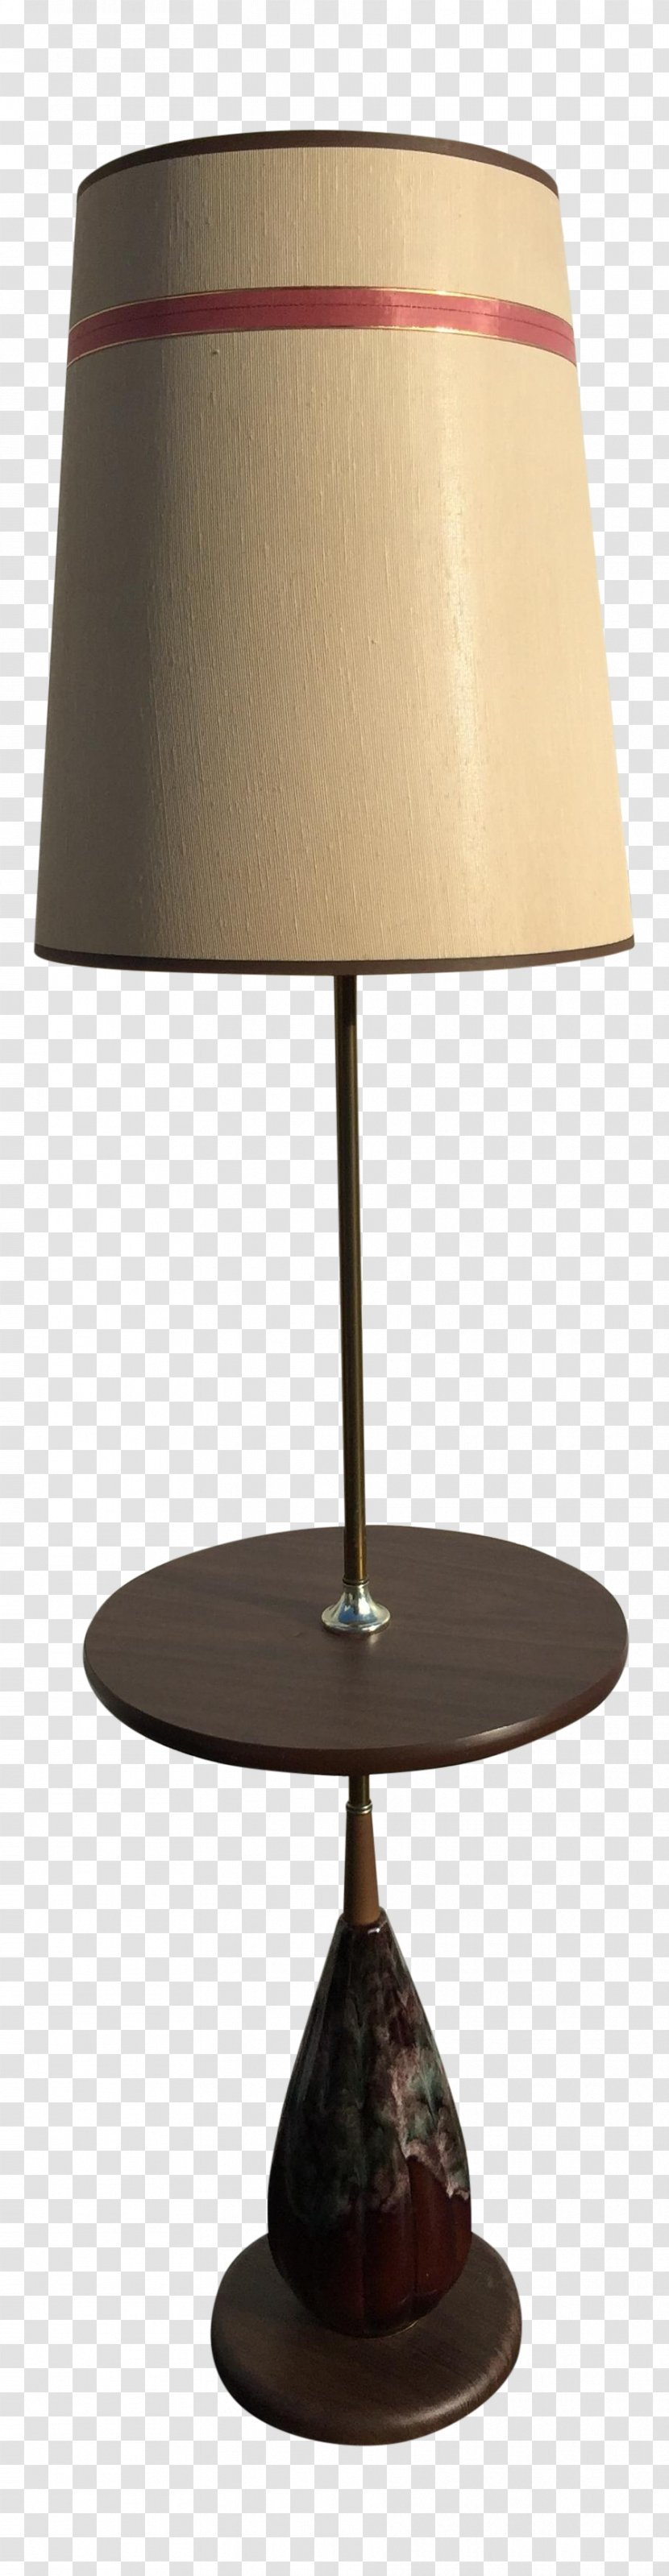 Lamp Shades Lava Electric Light Floor Midcentury Modern Chinese Style Retro Transparent Png